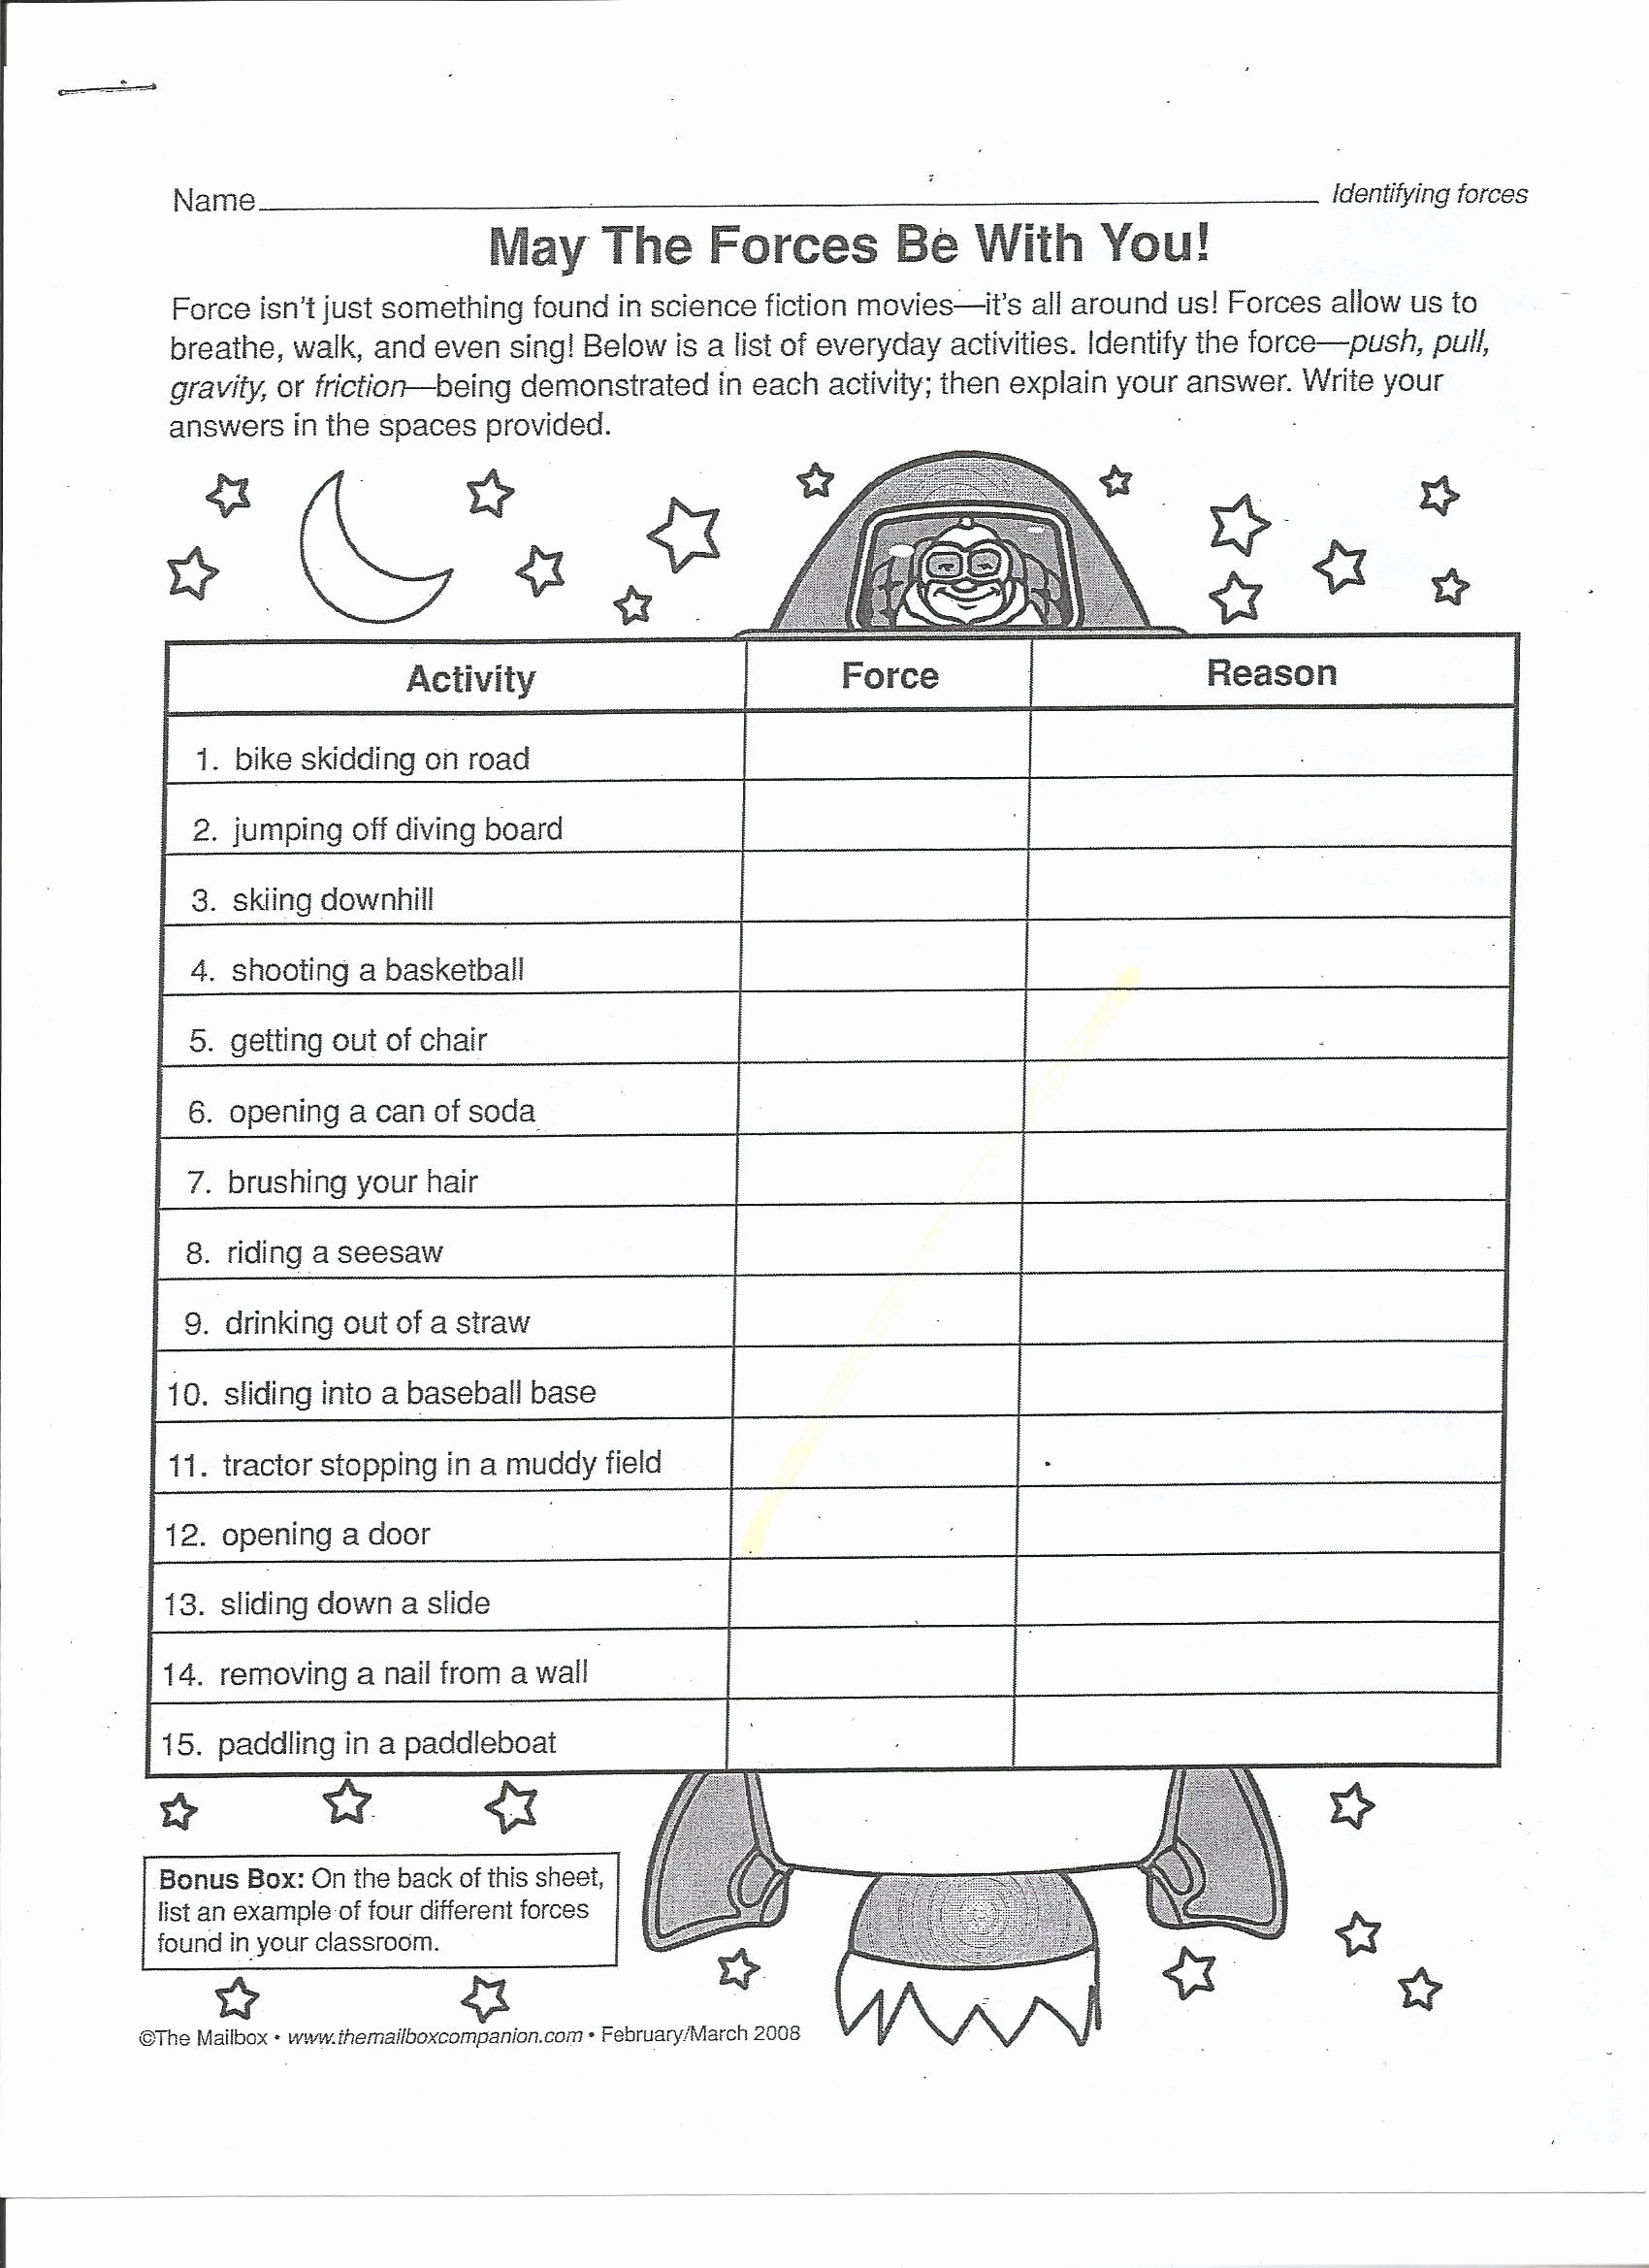 Free 8th Grade Science Worksheets Fresh 20 8th Grade Science Worksheets